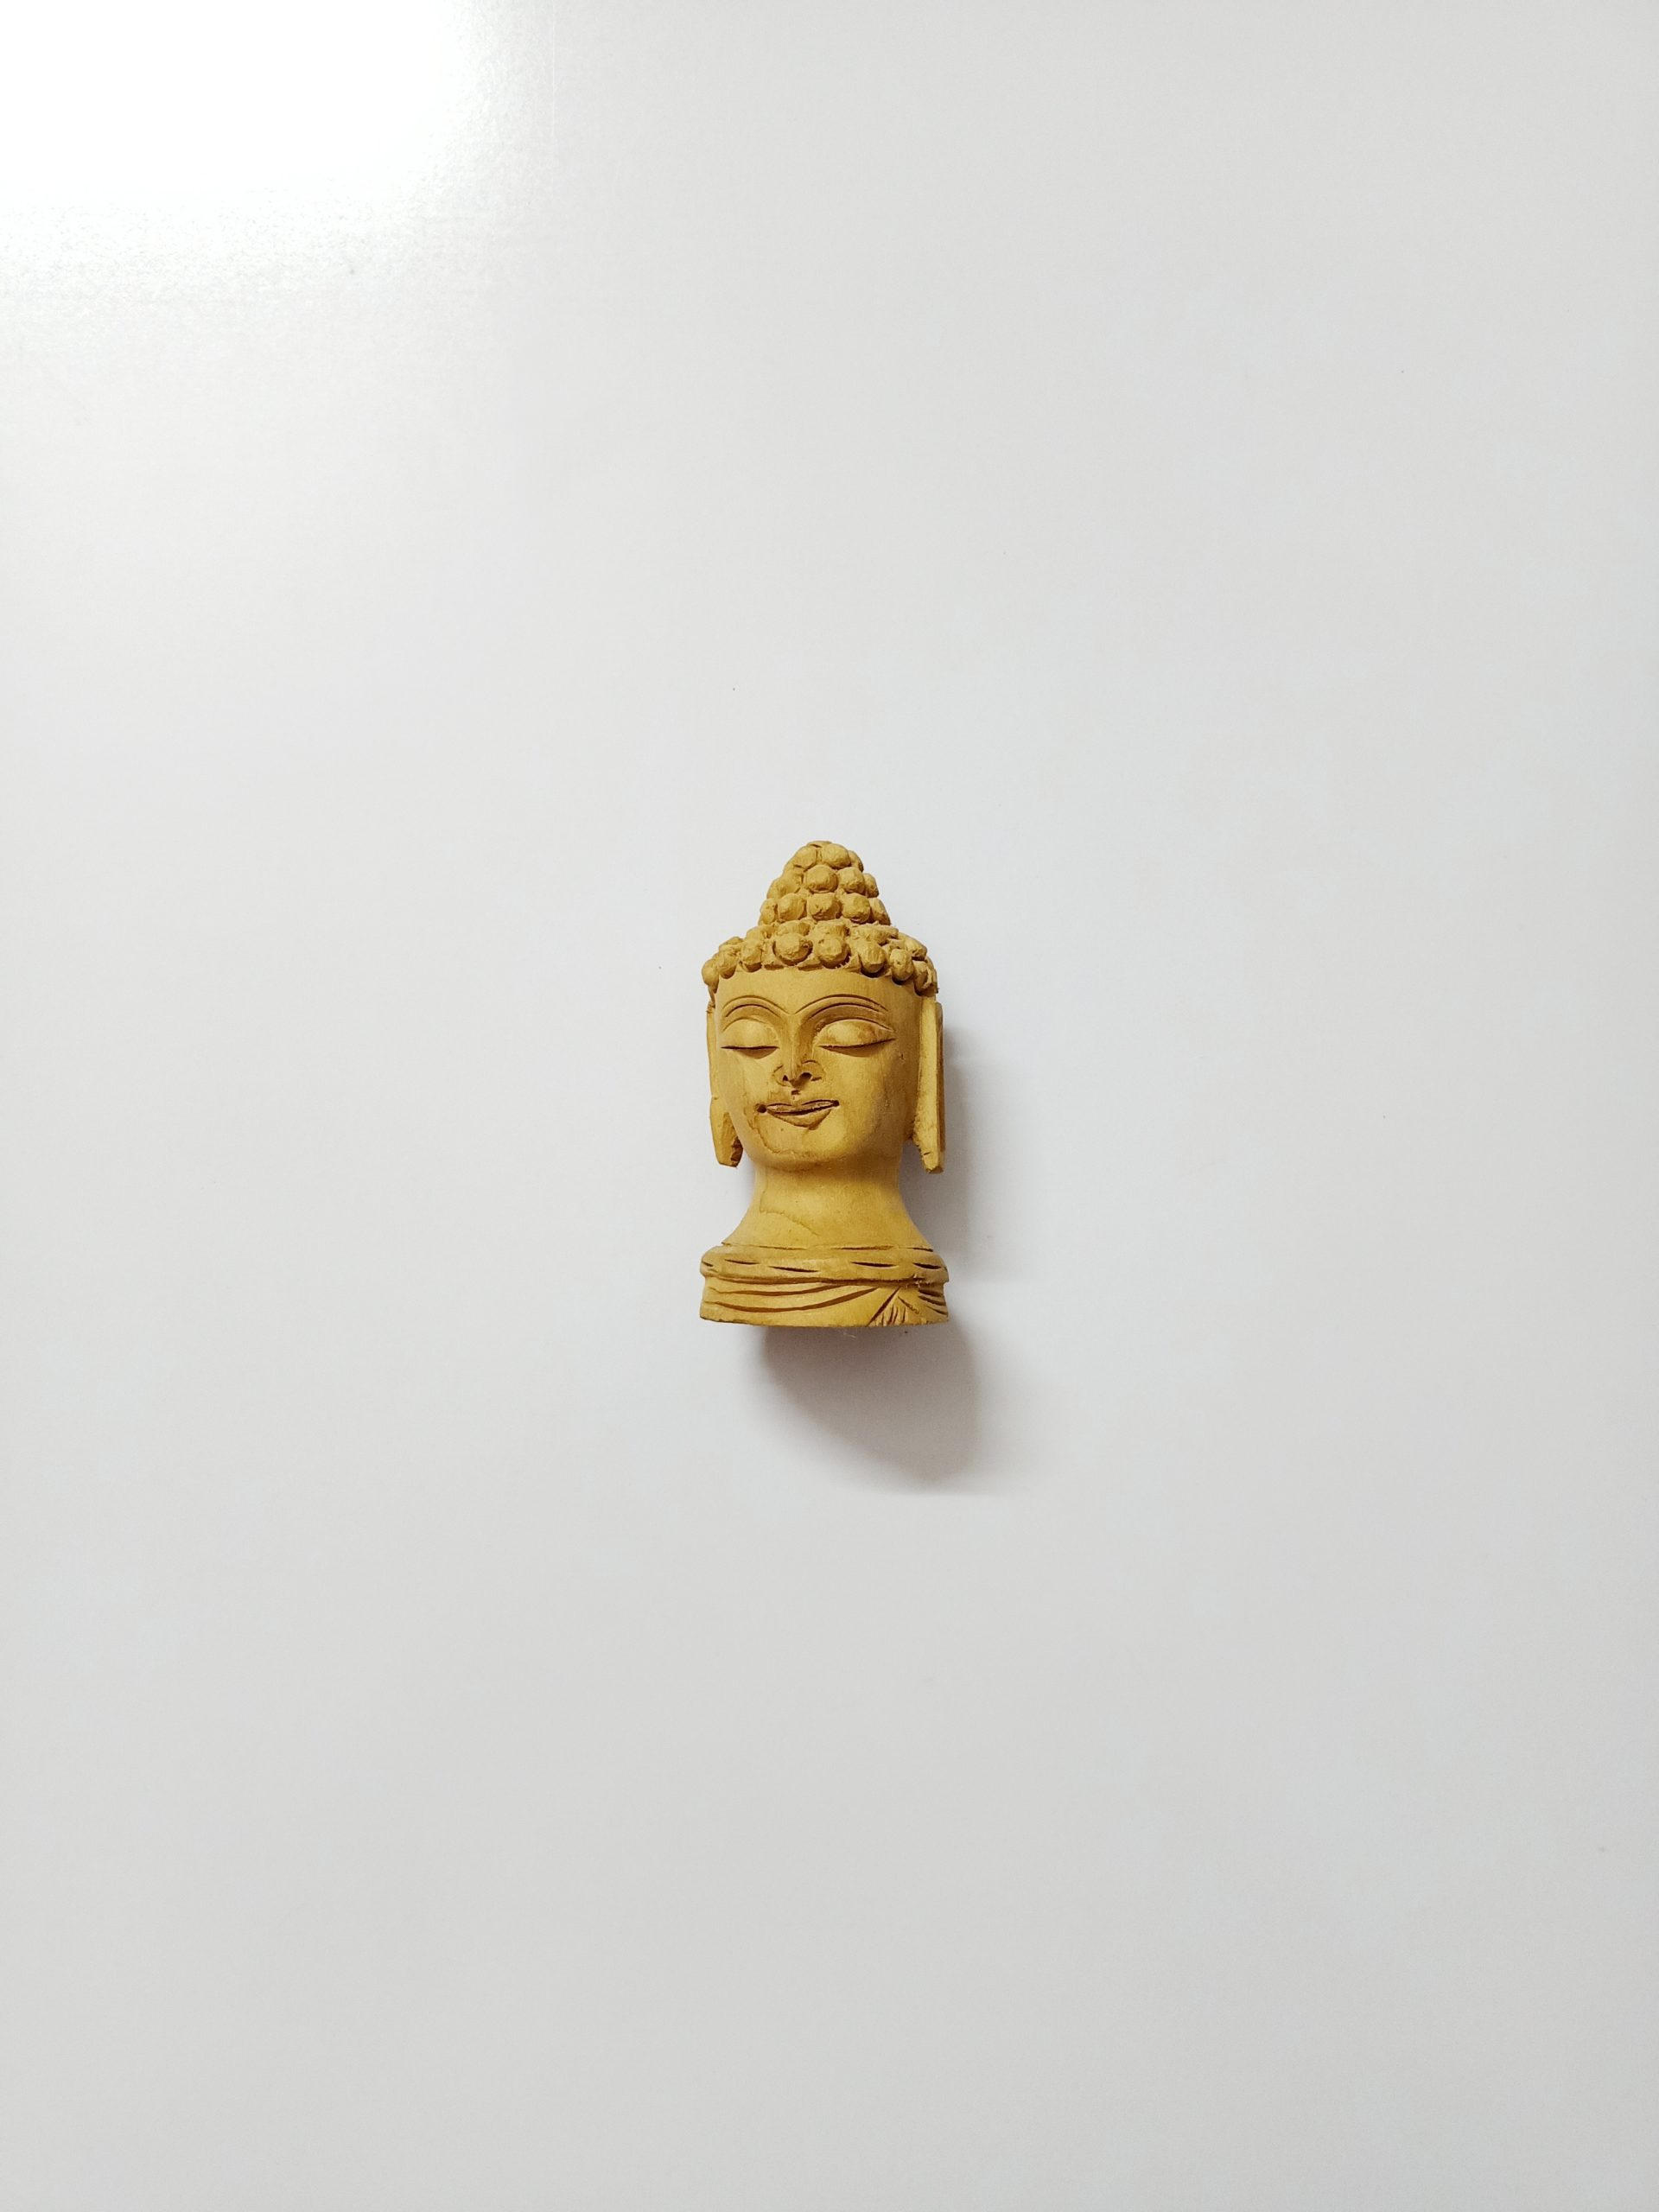 A wooden statue of Buddha